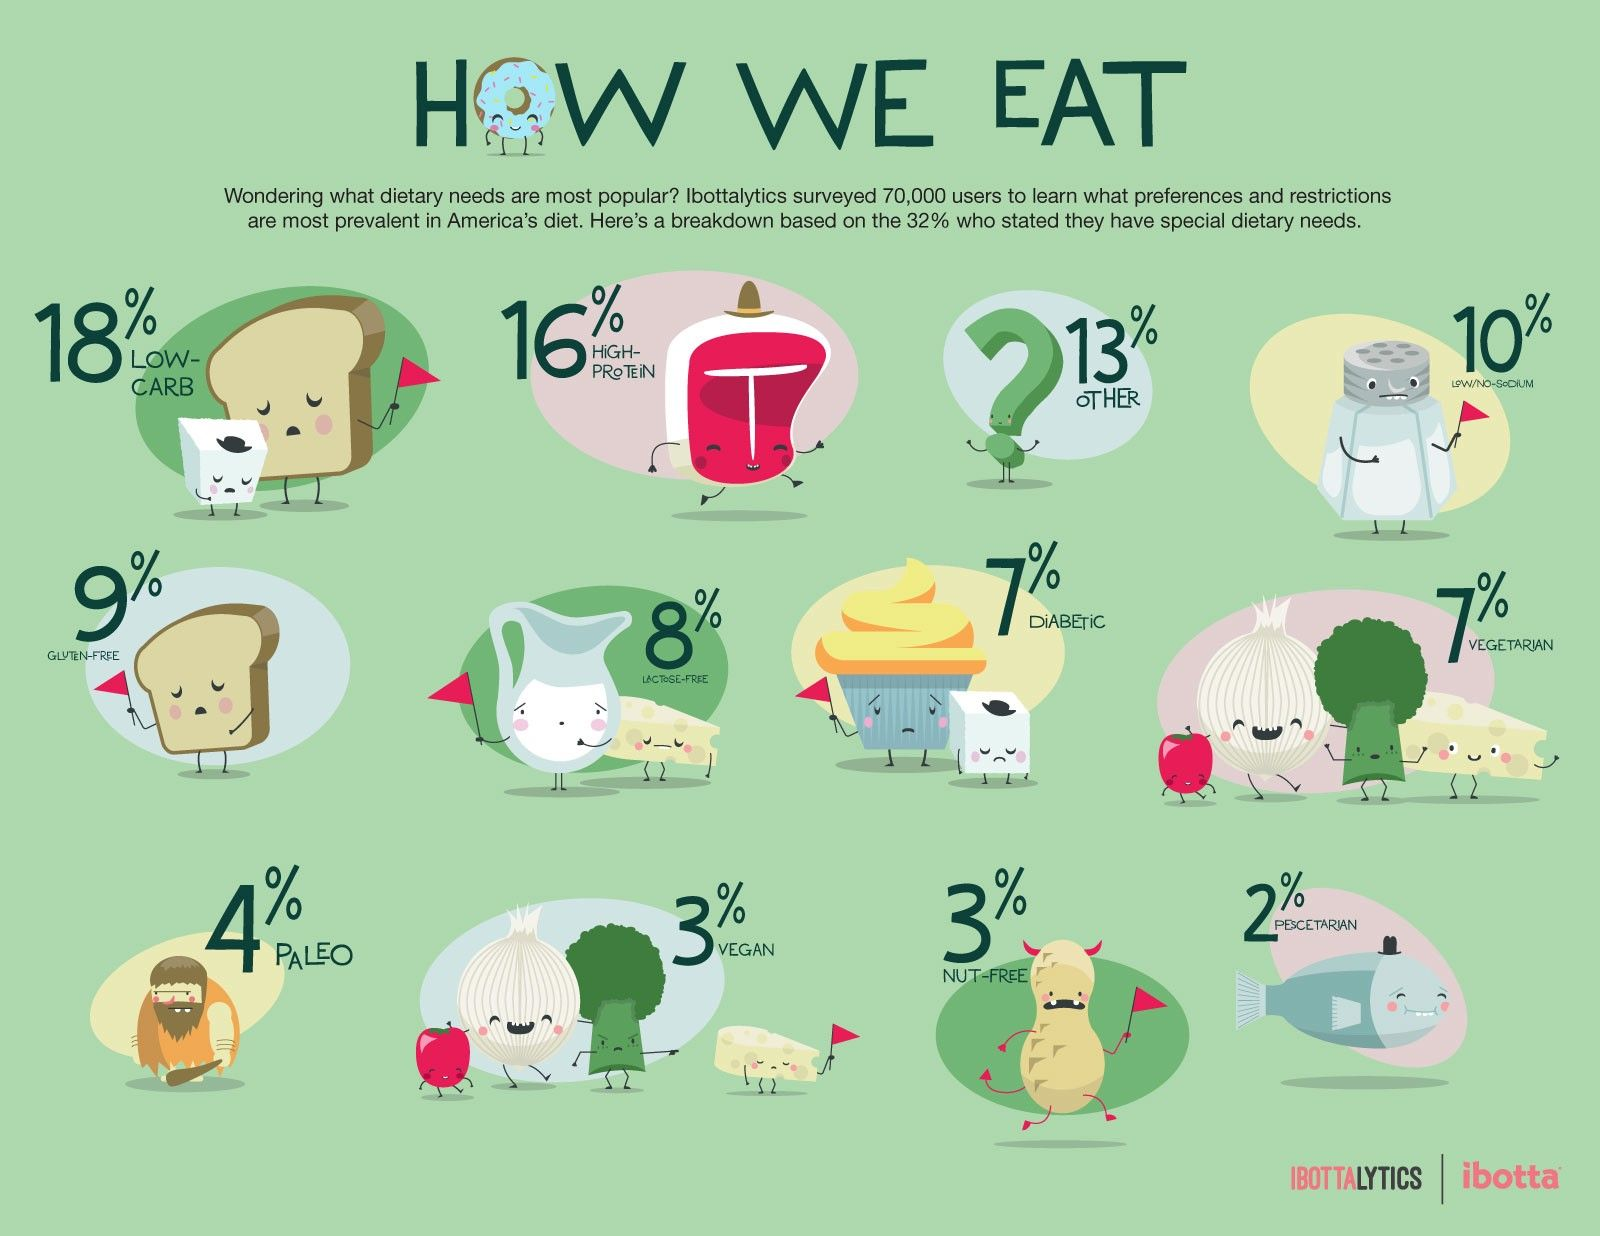 Wondering what dietary preferences are most common